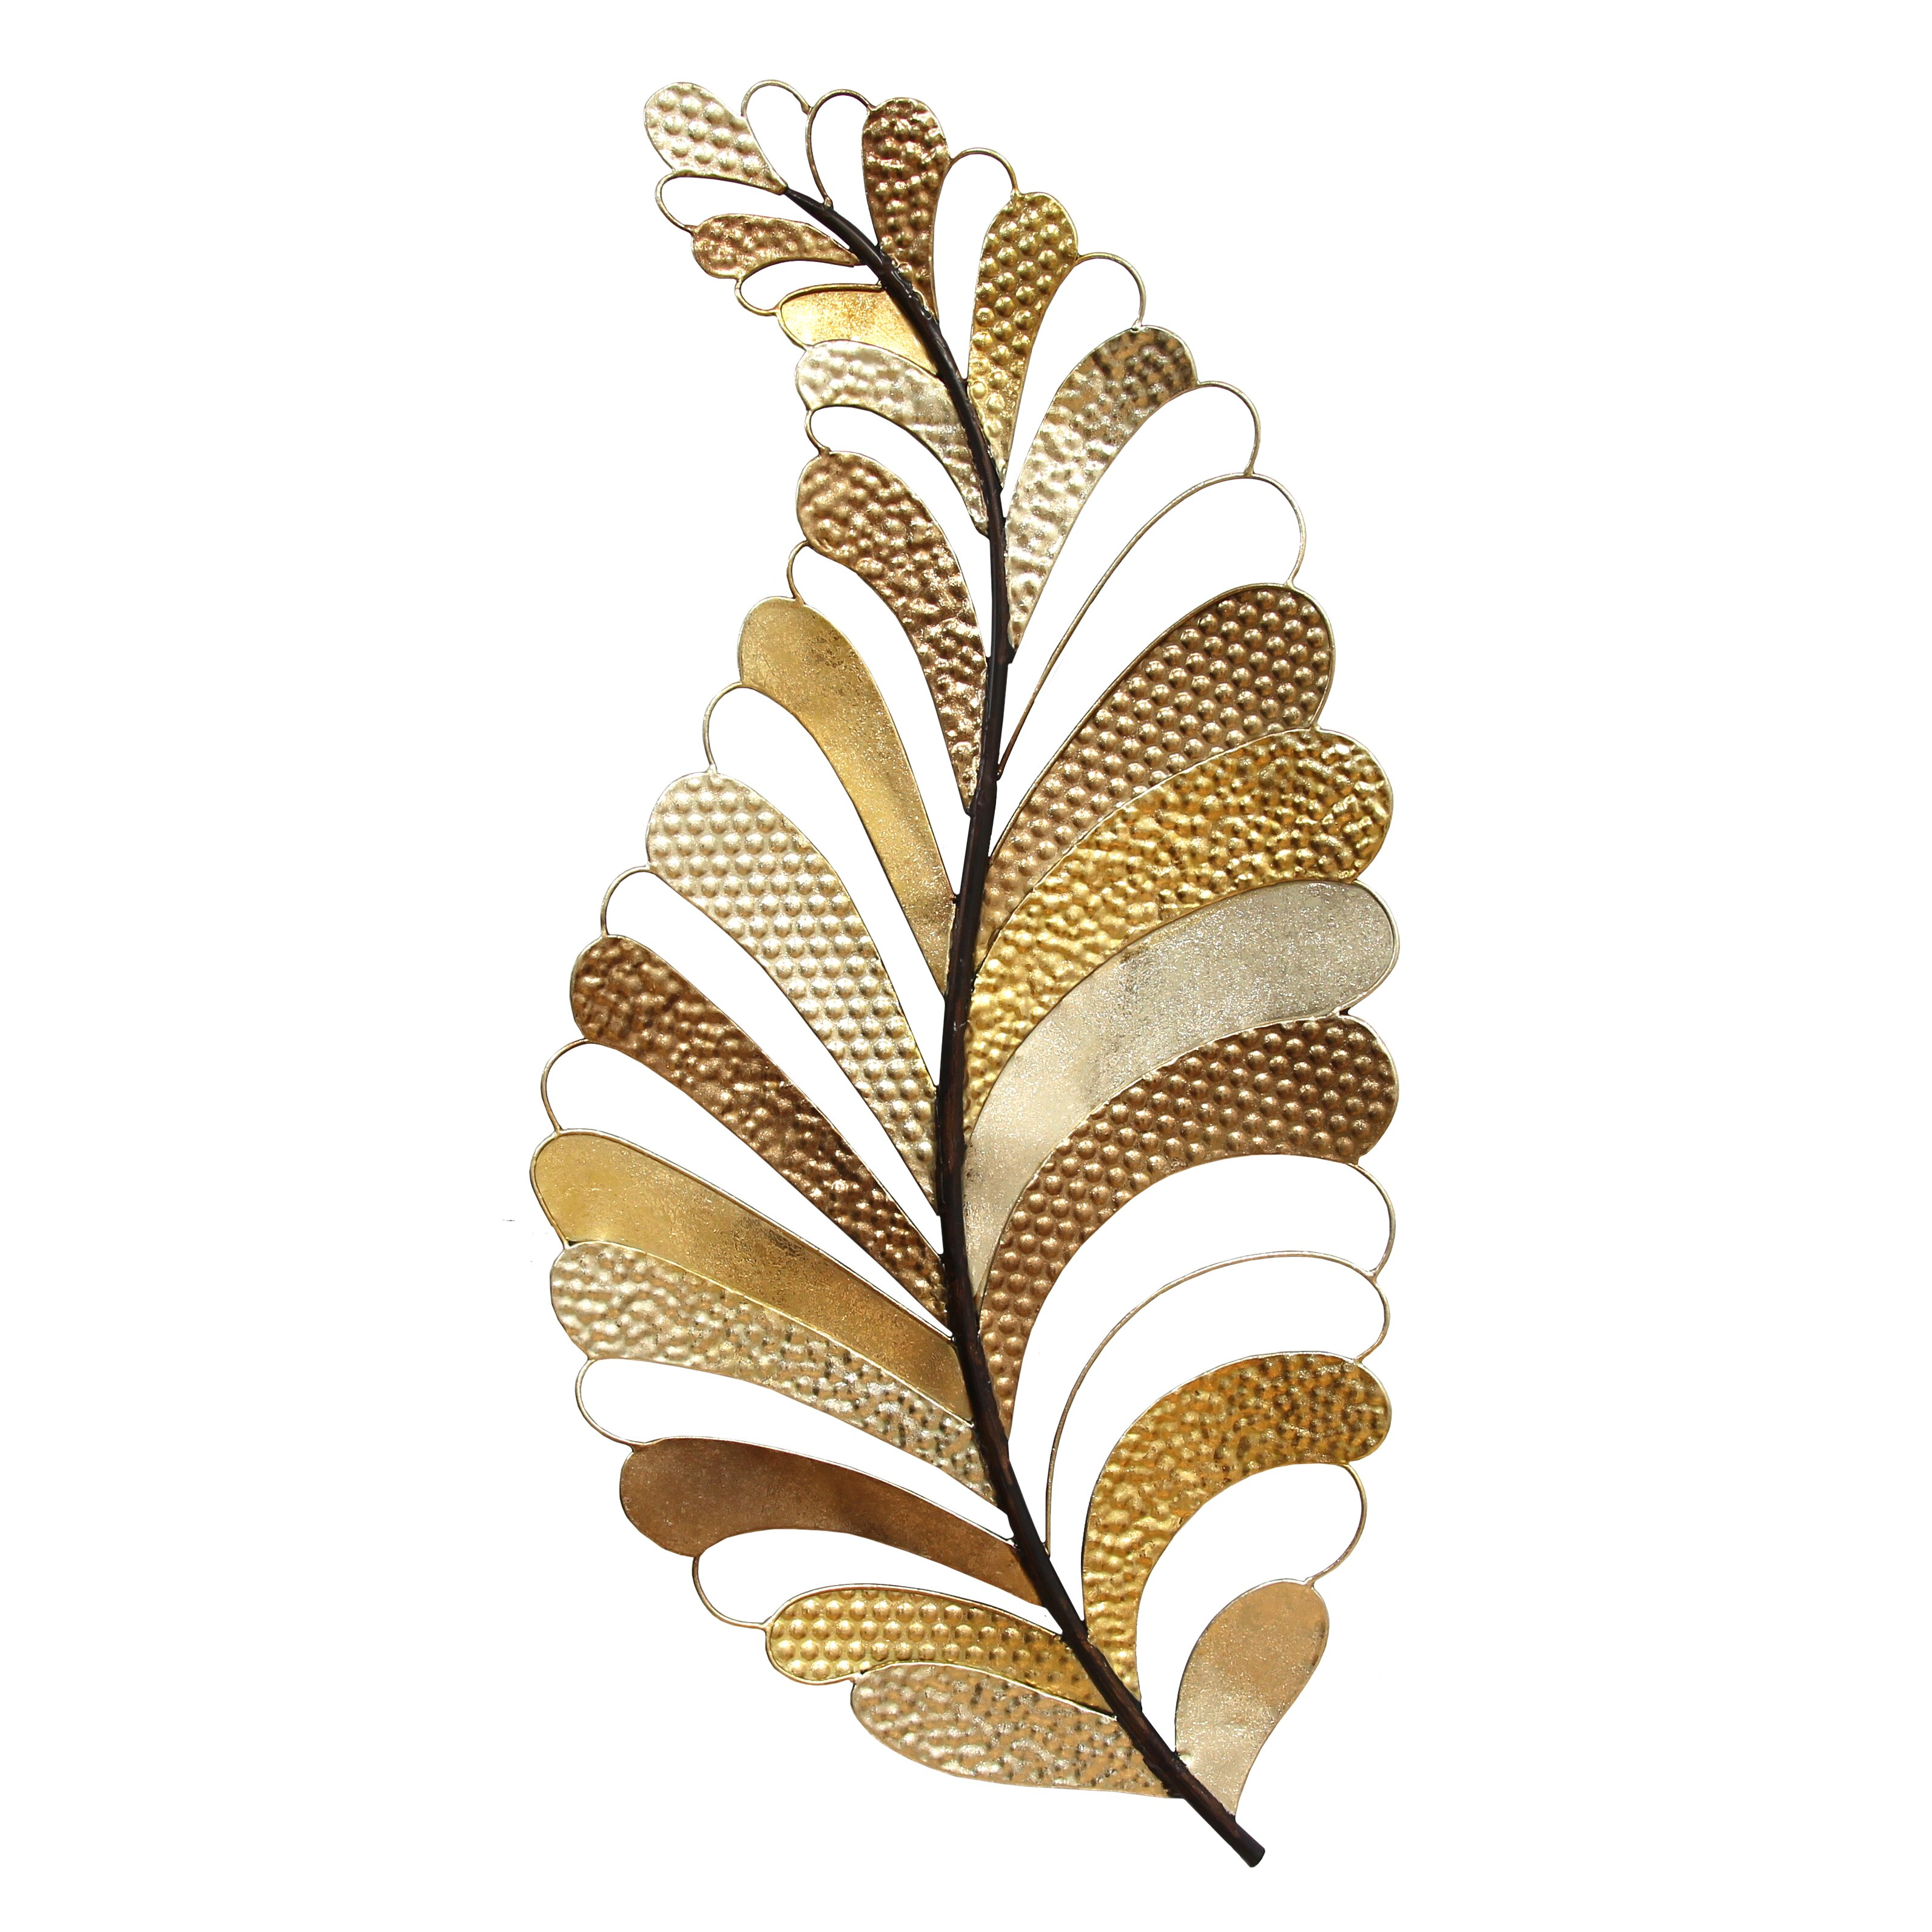 Stratton home decor leaf wall decor reviews wayfair for Leaf wall decor